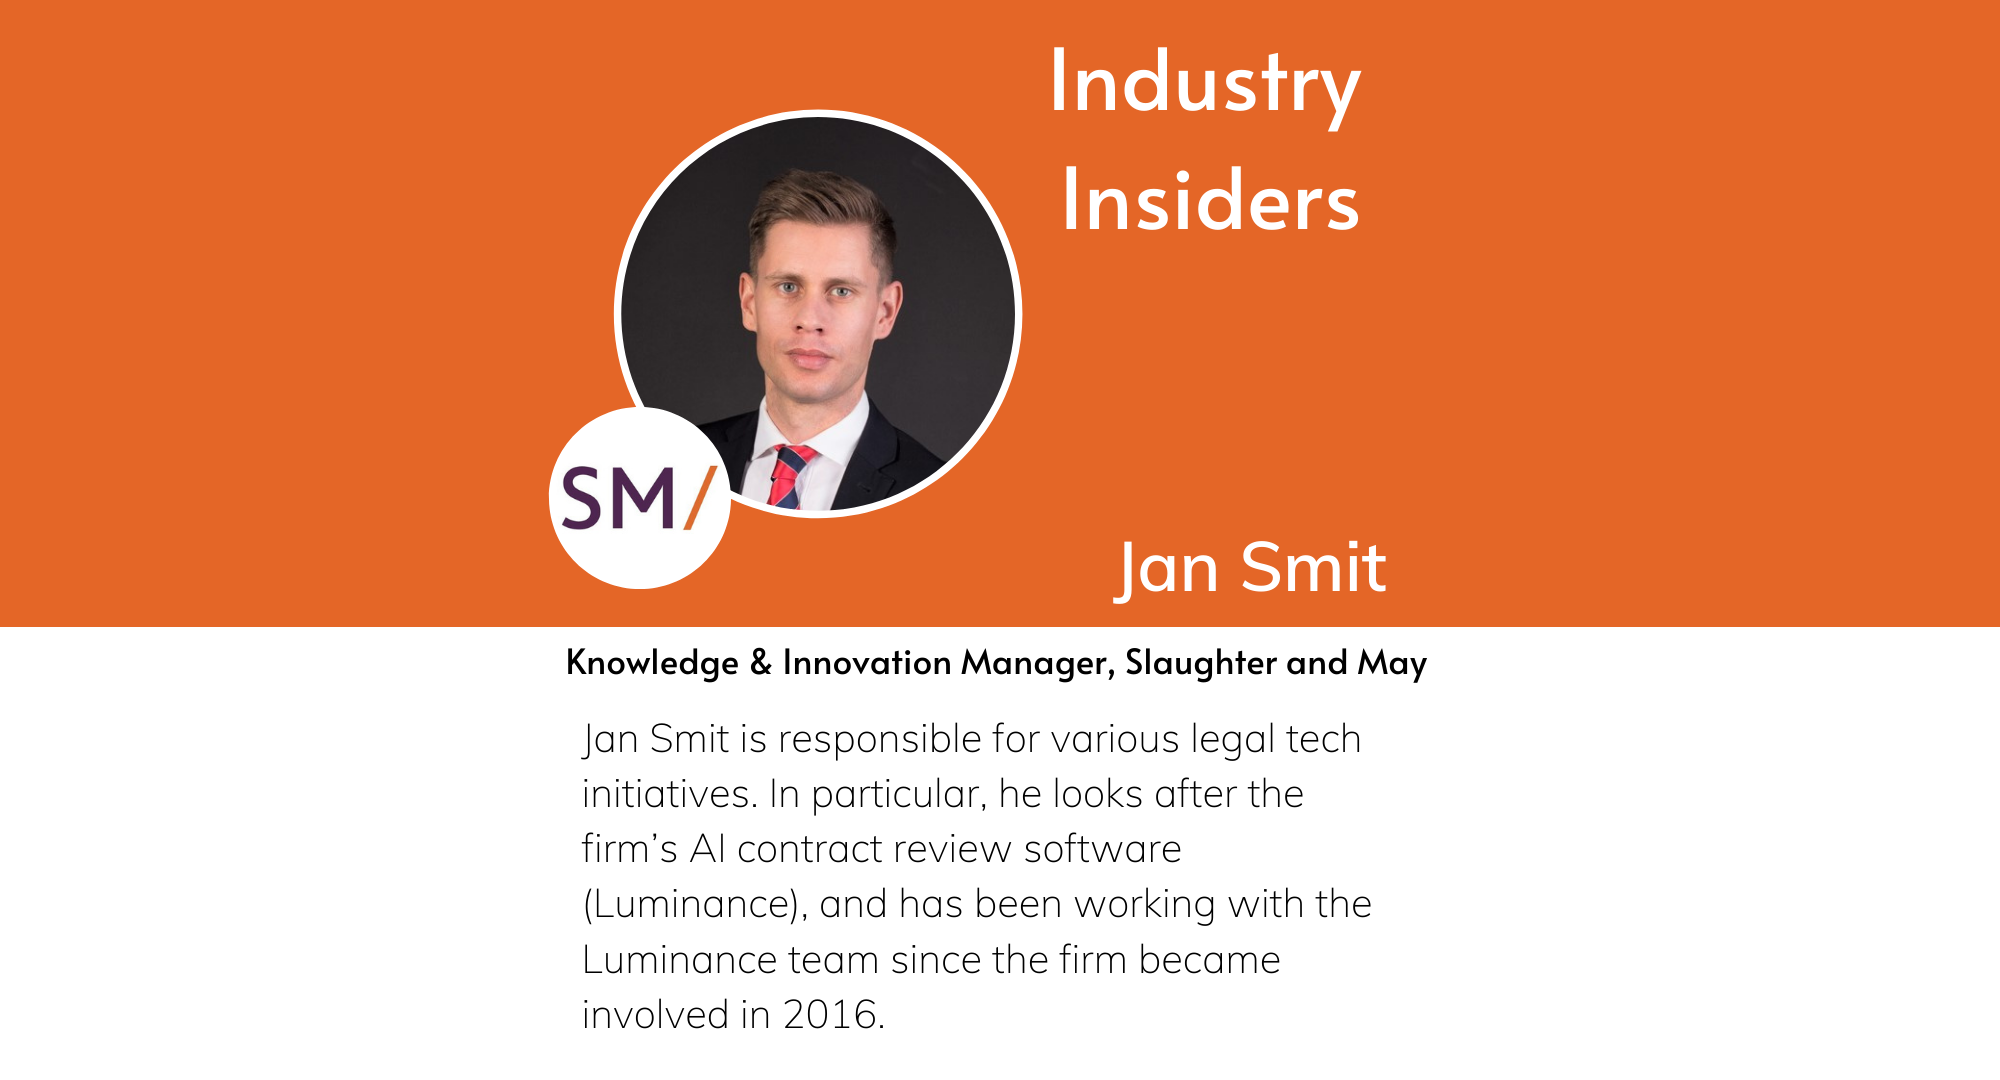 Industry Insiders - Innovation at Slaughter and May